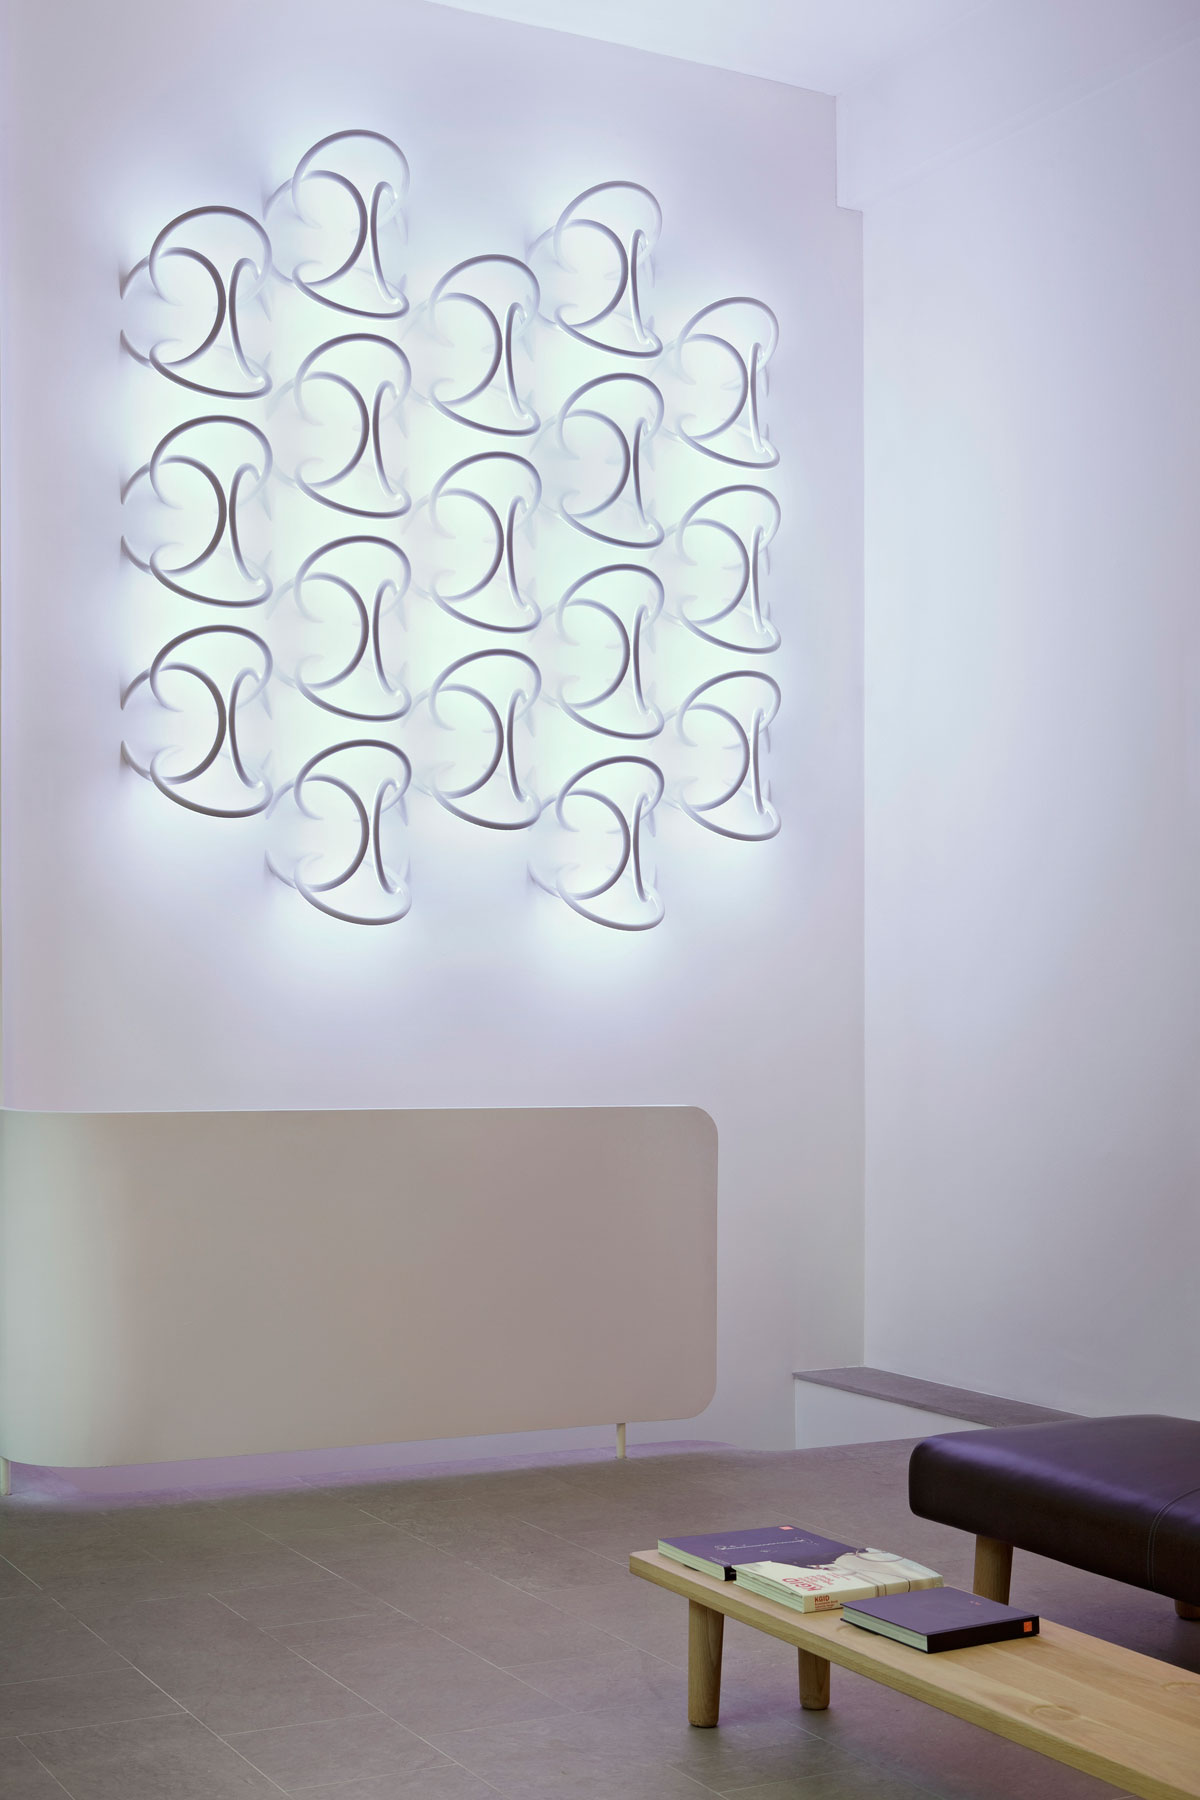 Wall Piercing – Soft Architecture Wall Piercing Light